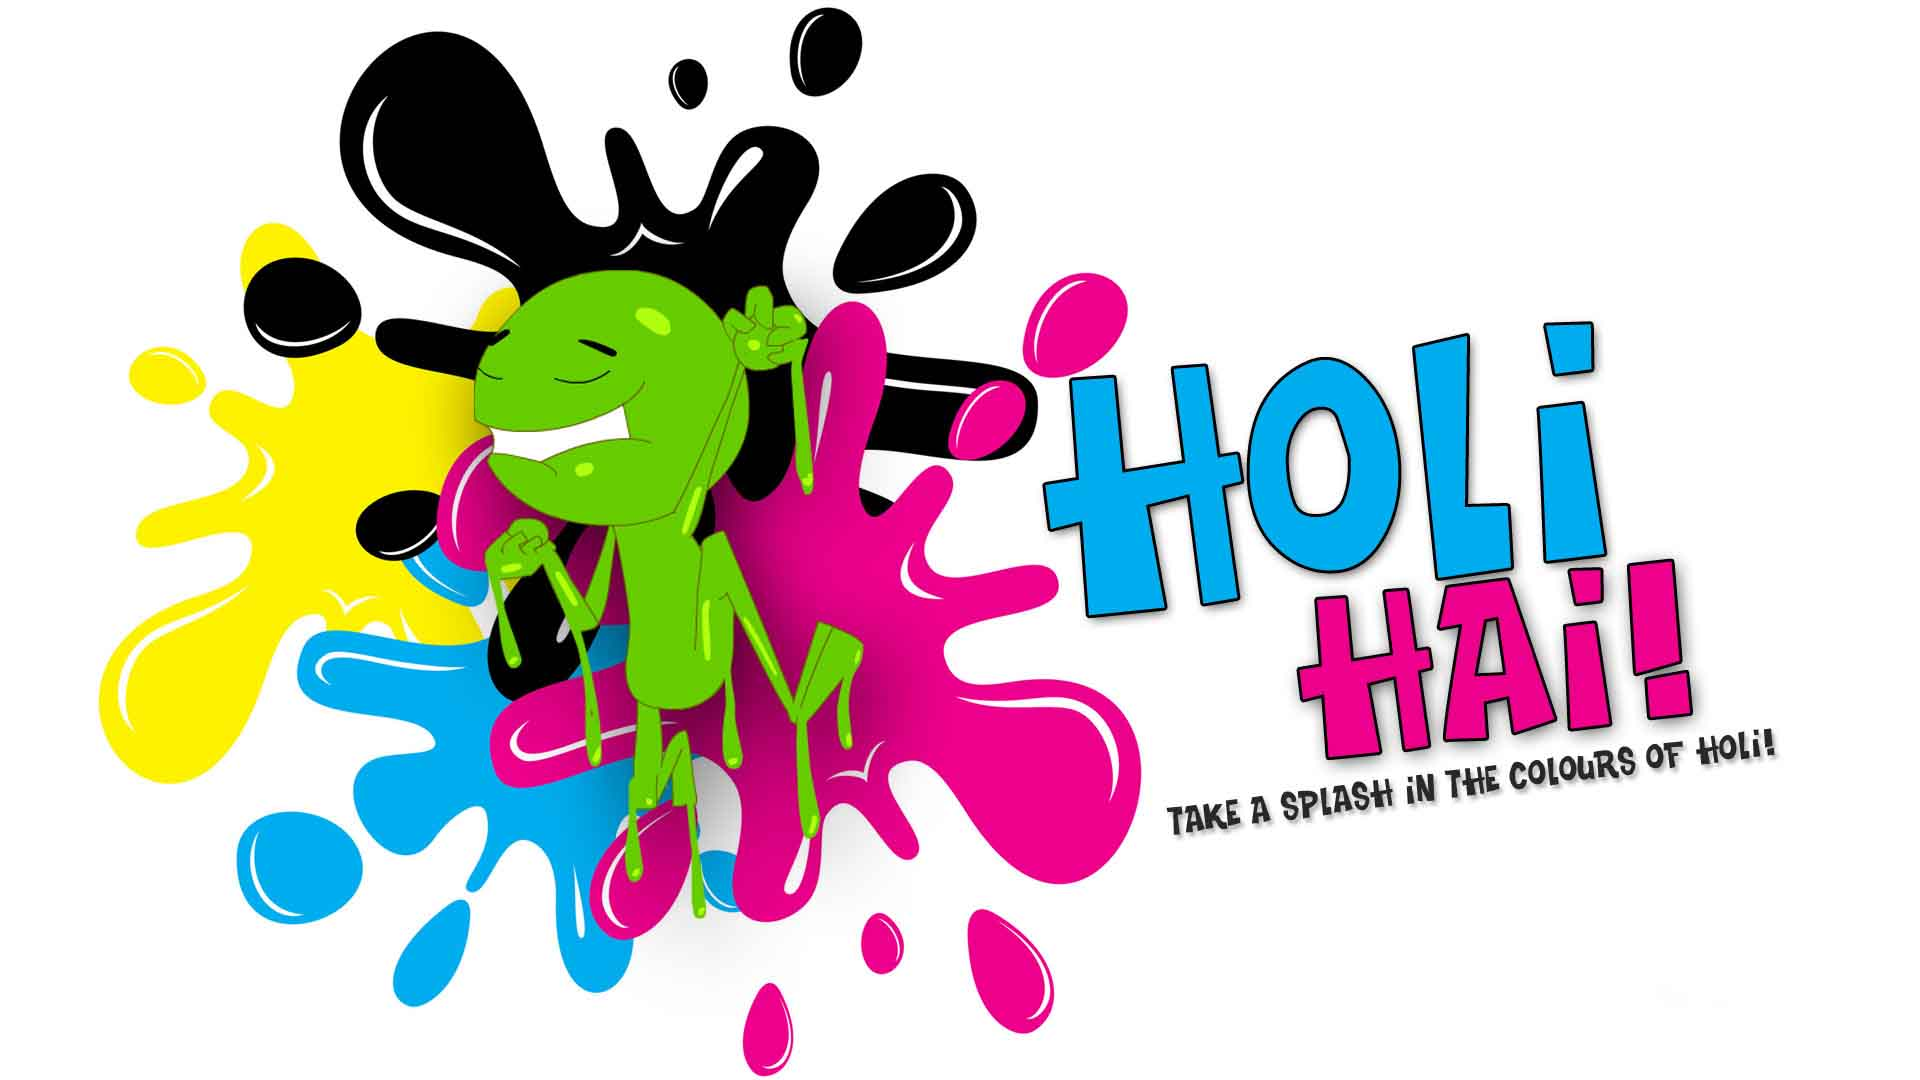 Holi Festival Hd Images Free Download